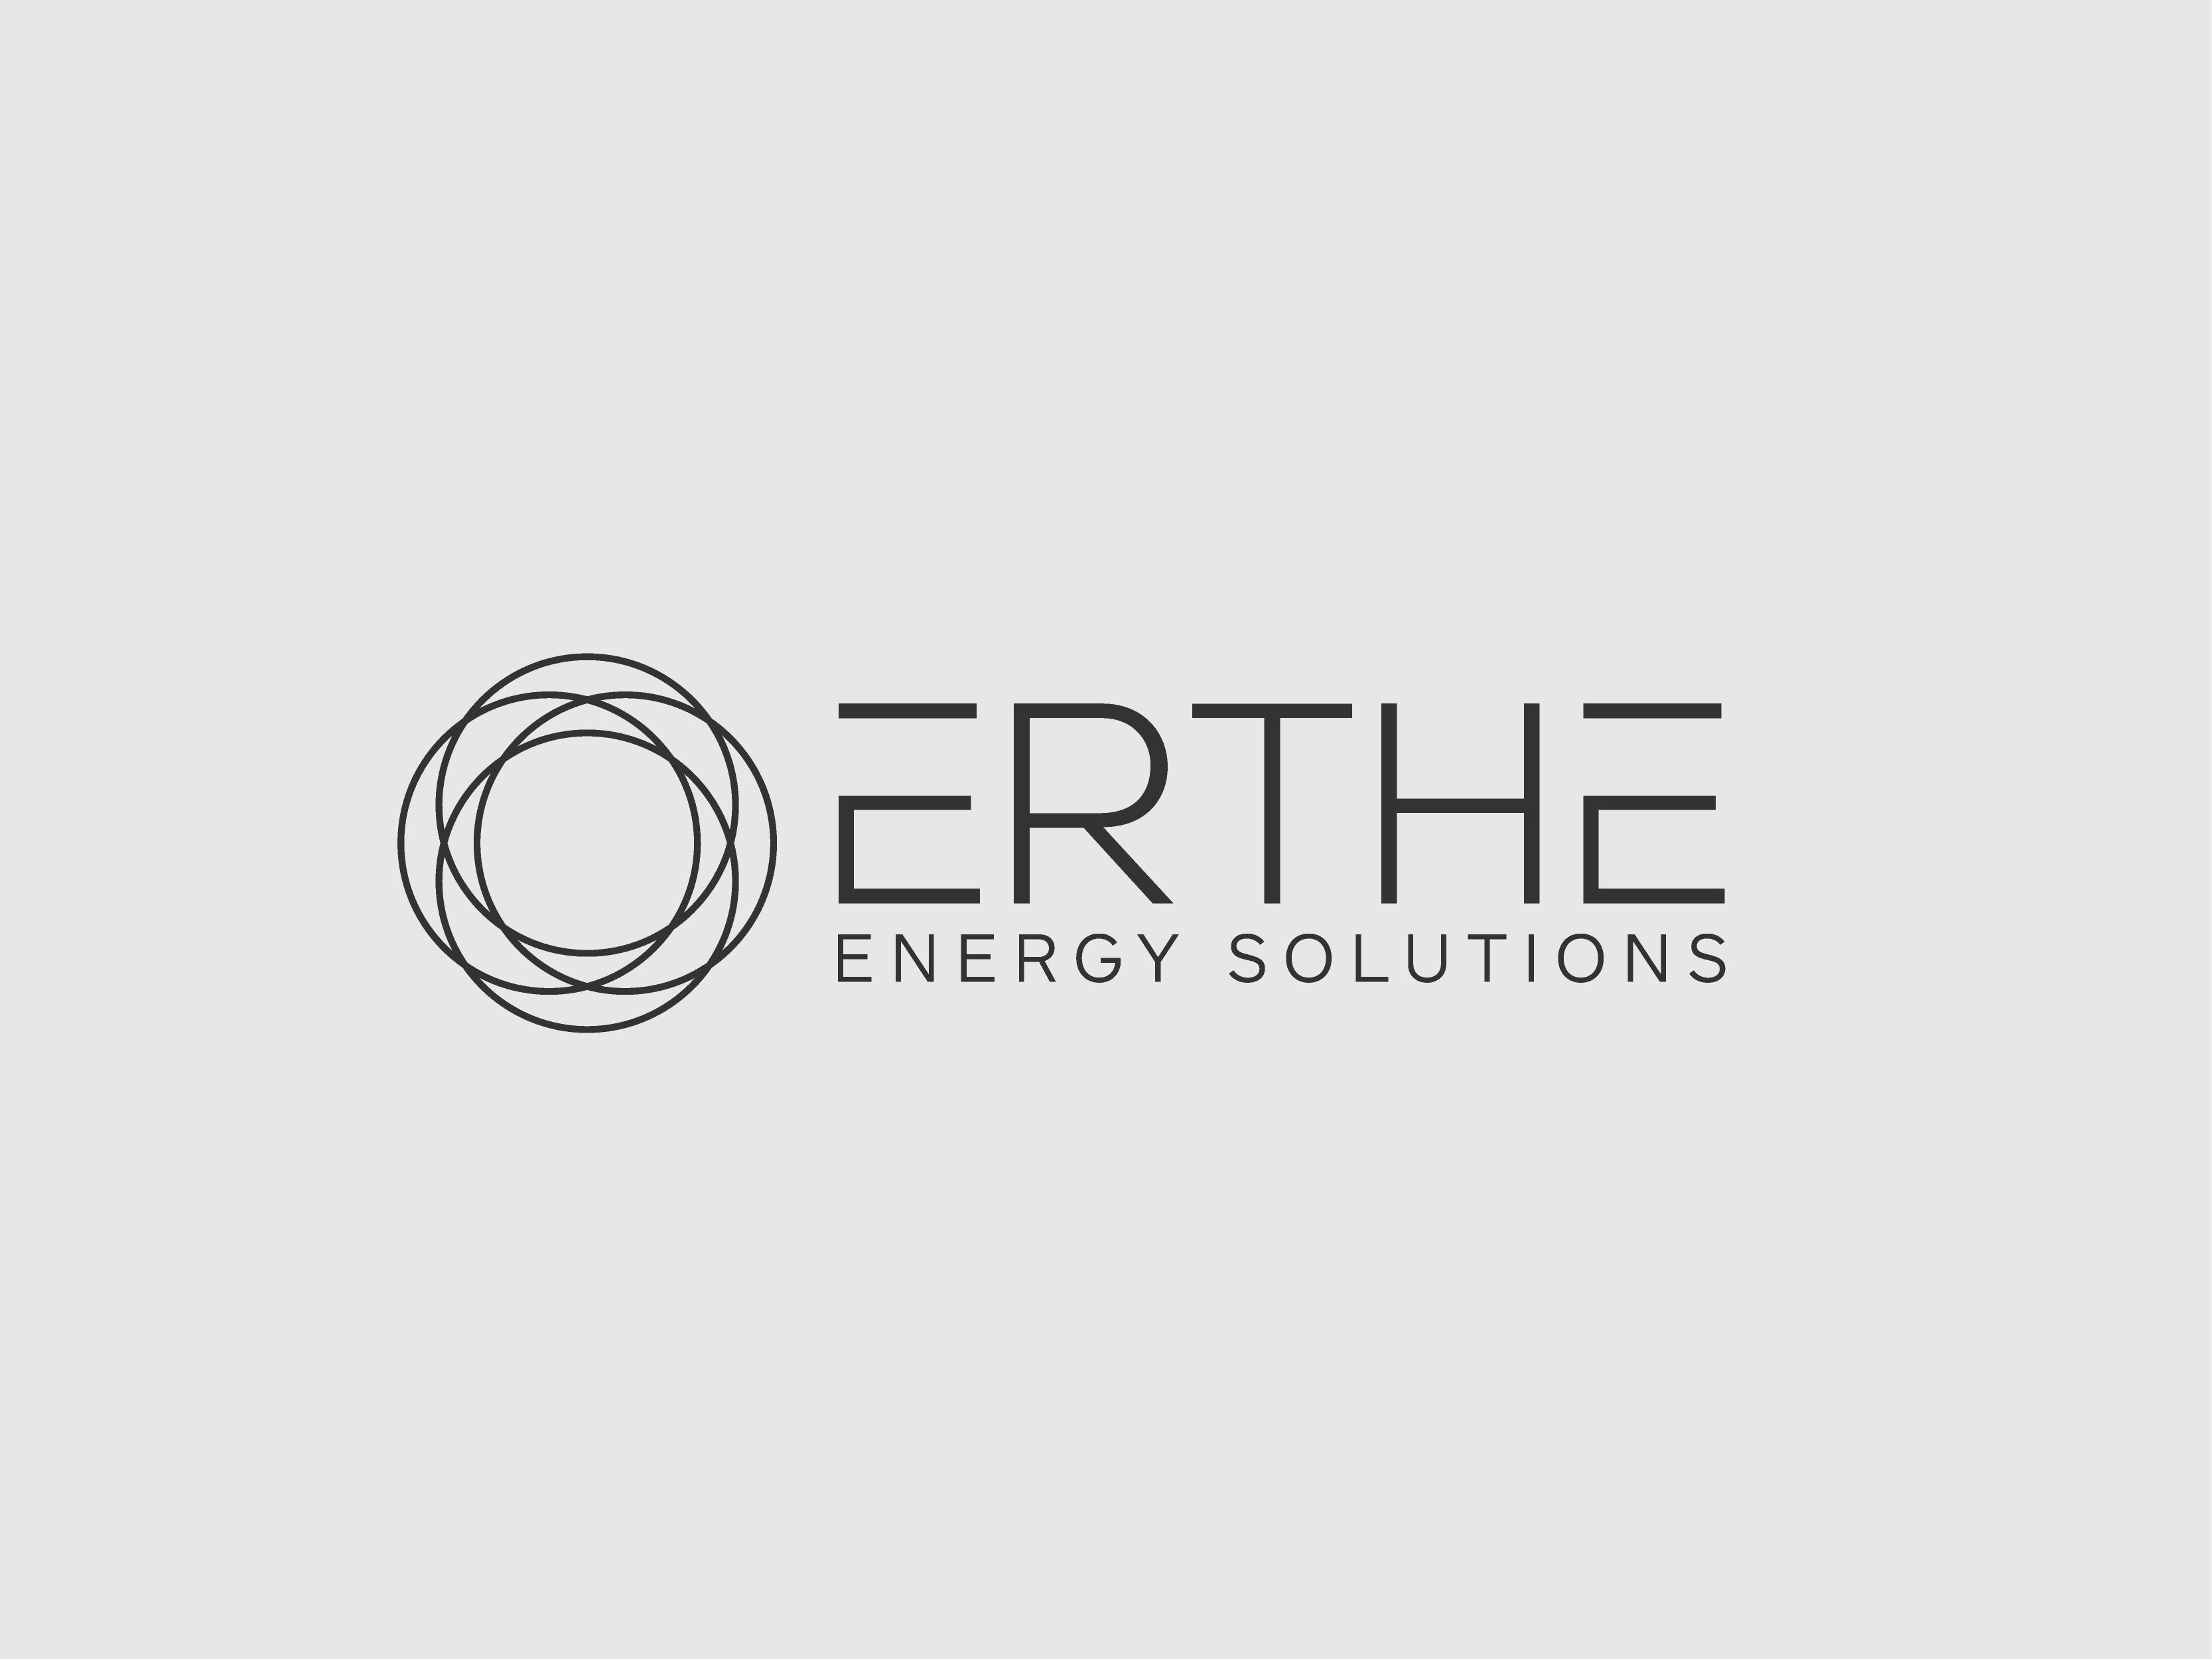 Erthe Energy Solutions